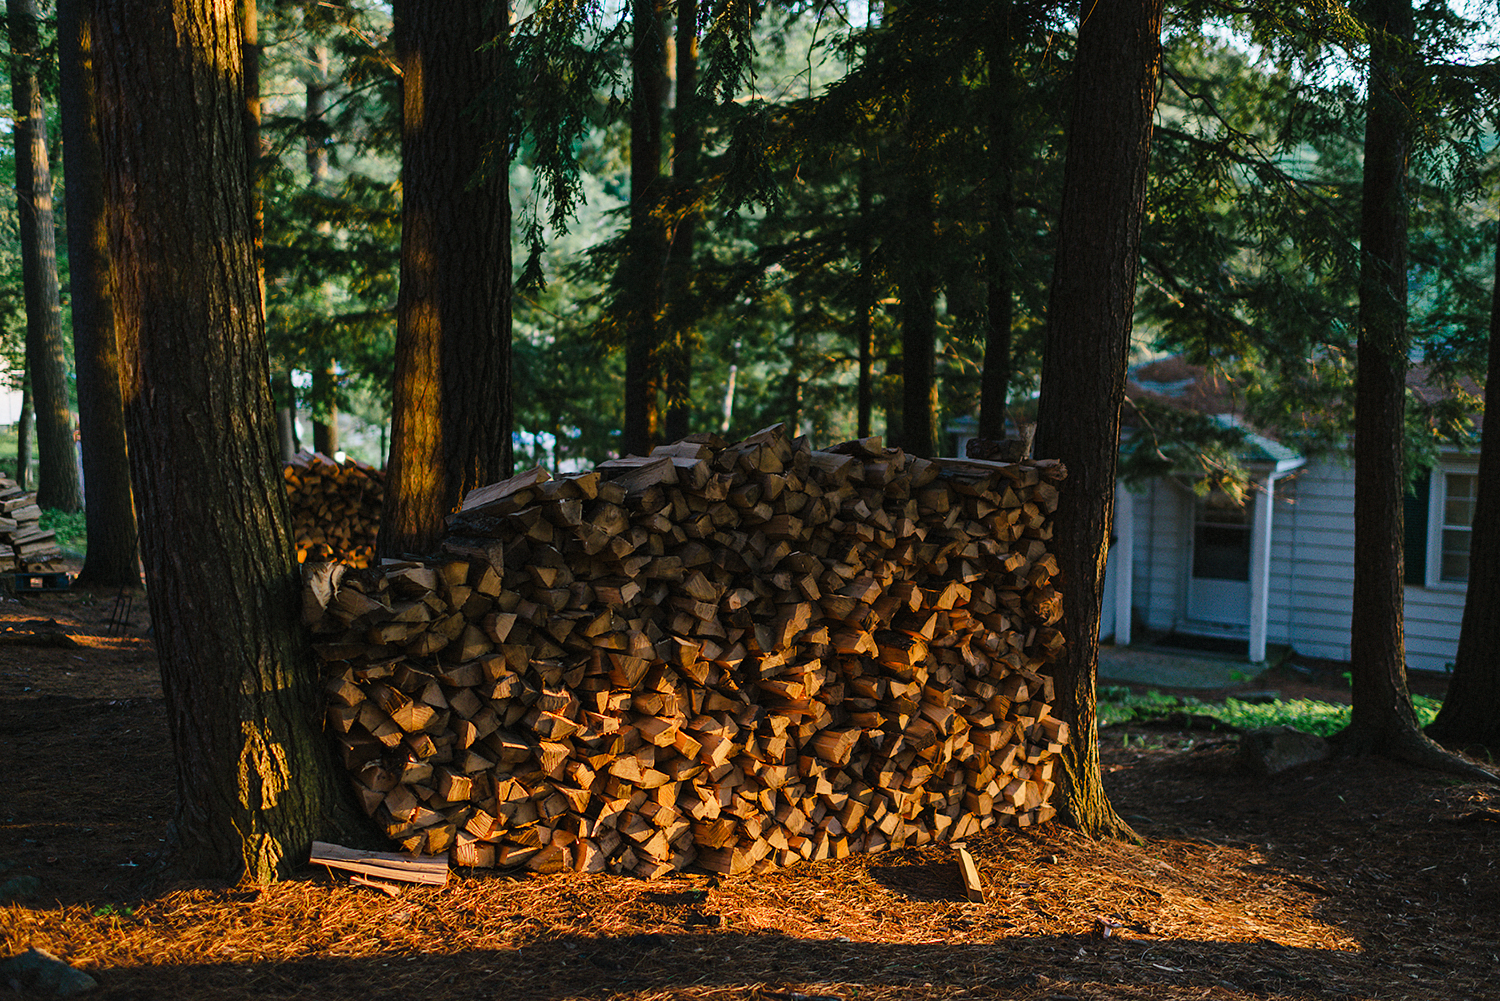 Muskoka-Cottage-Wedding-Photography-Photographer_Photojournalistic-Documentary-Wedding-Photography_Lakeside-Ceremony-Sunset-Light-on--lonely-logs.jpg